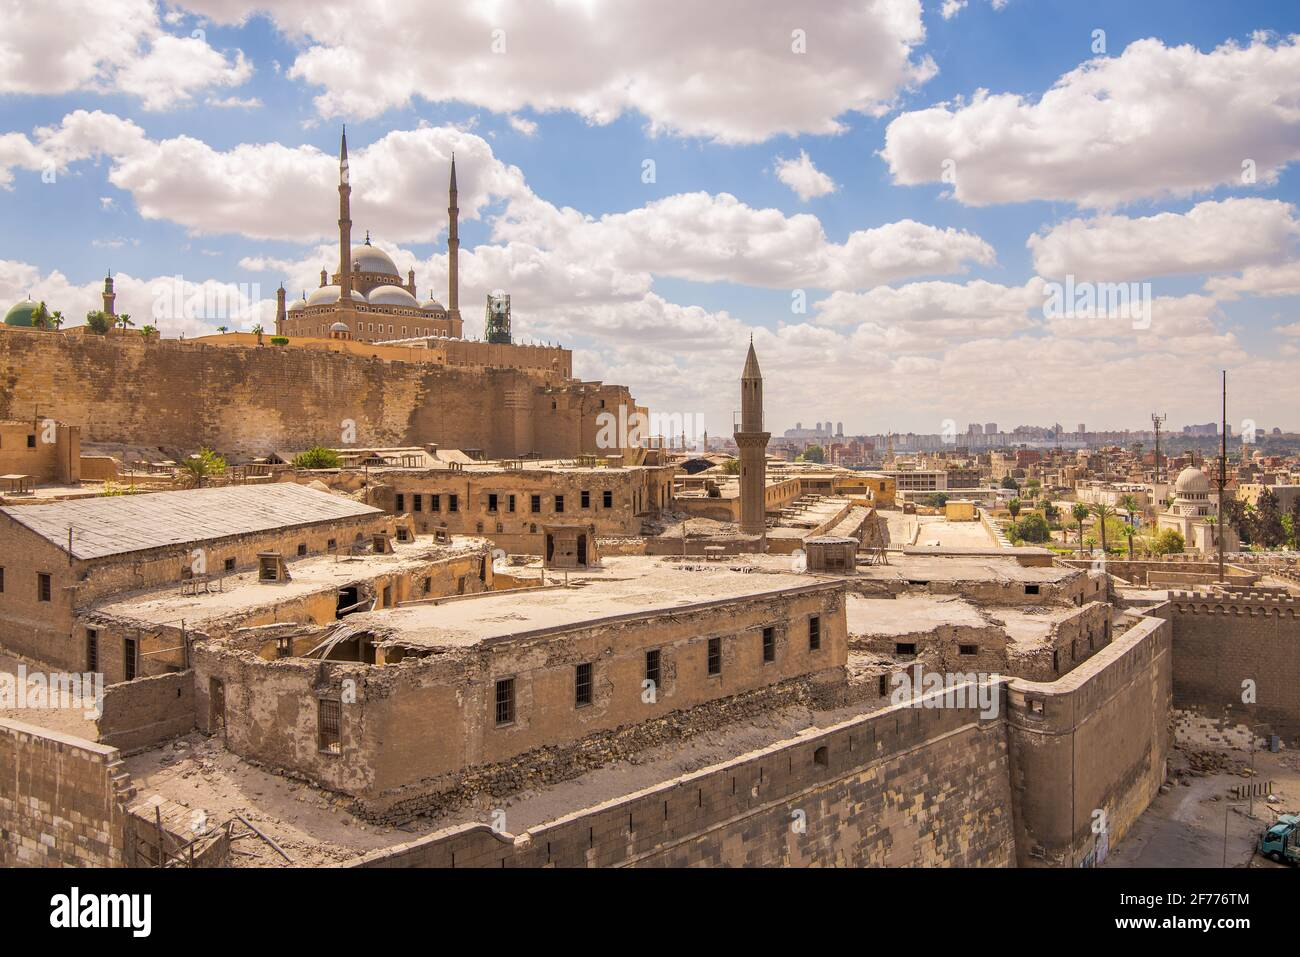 Day shot of Great Mosque of Muhammad Ali Pasha - Alabaster Mosque - located in the Citadel of Cairo in Egypt, commissioned by Muhammad Ali Pasha, one of the landmarks and tourist attractions of Cairo Stock Photo